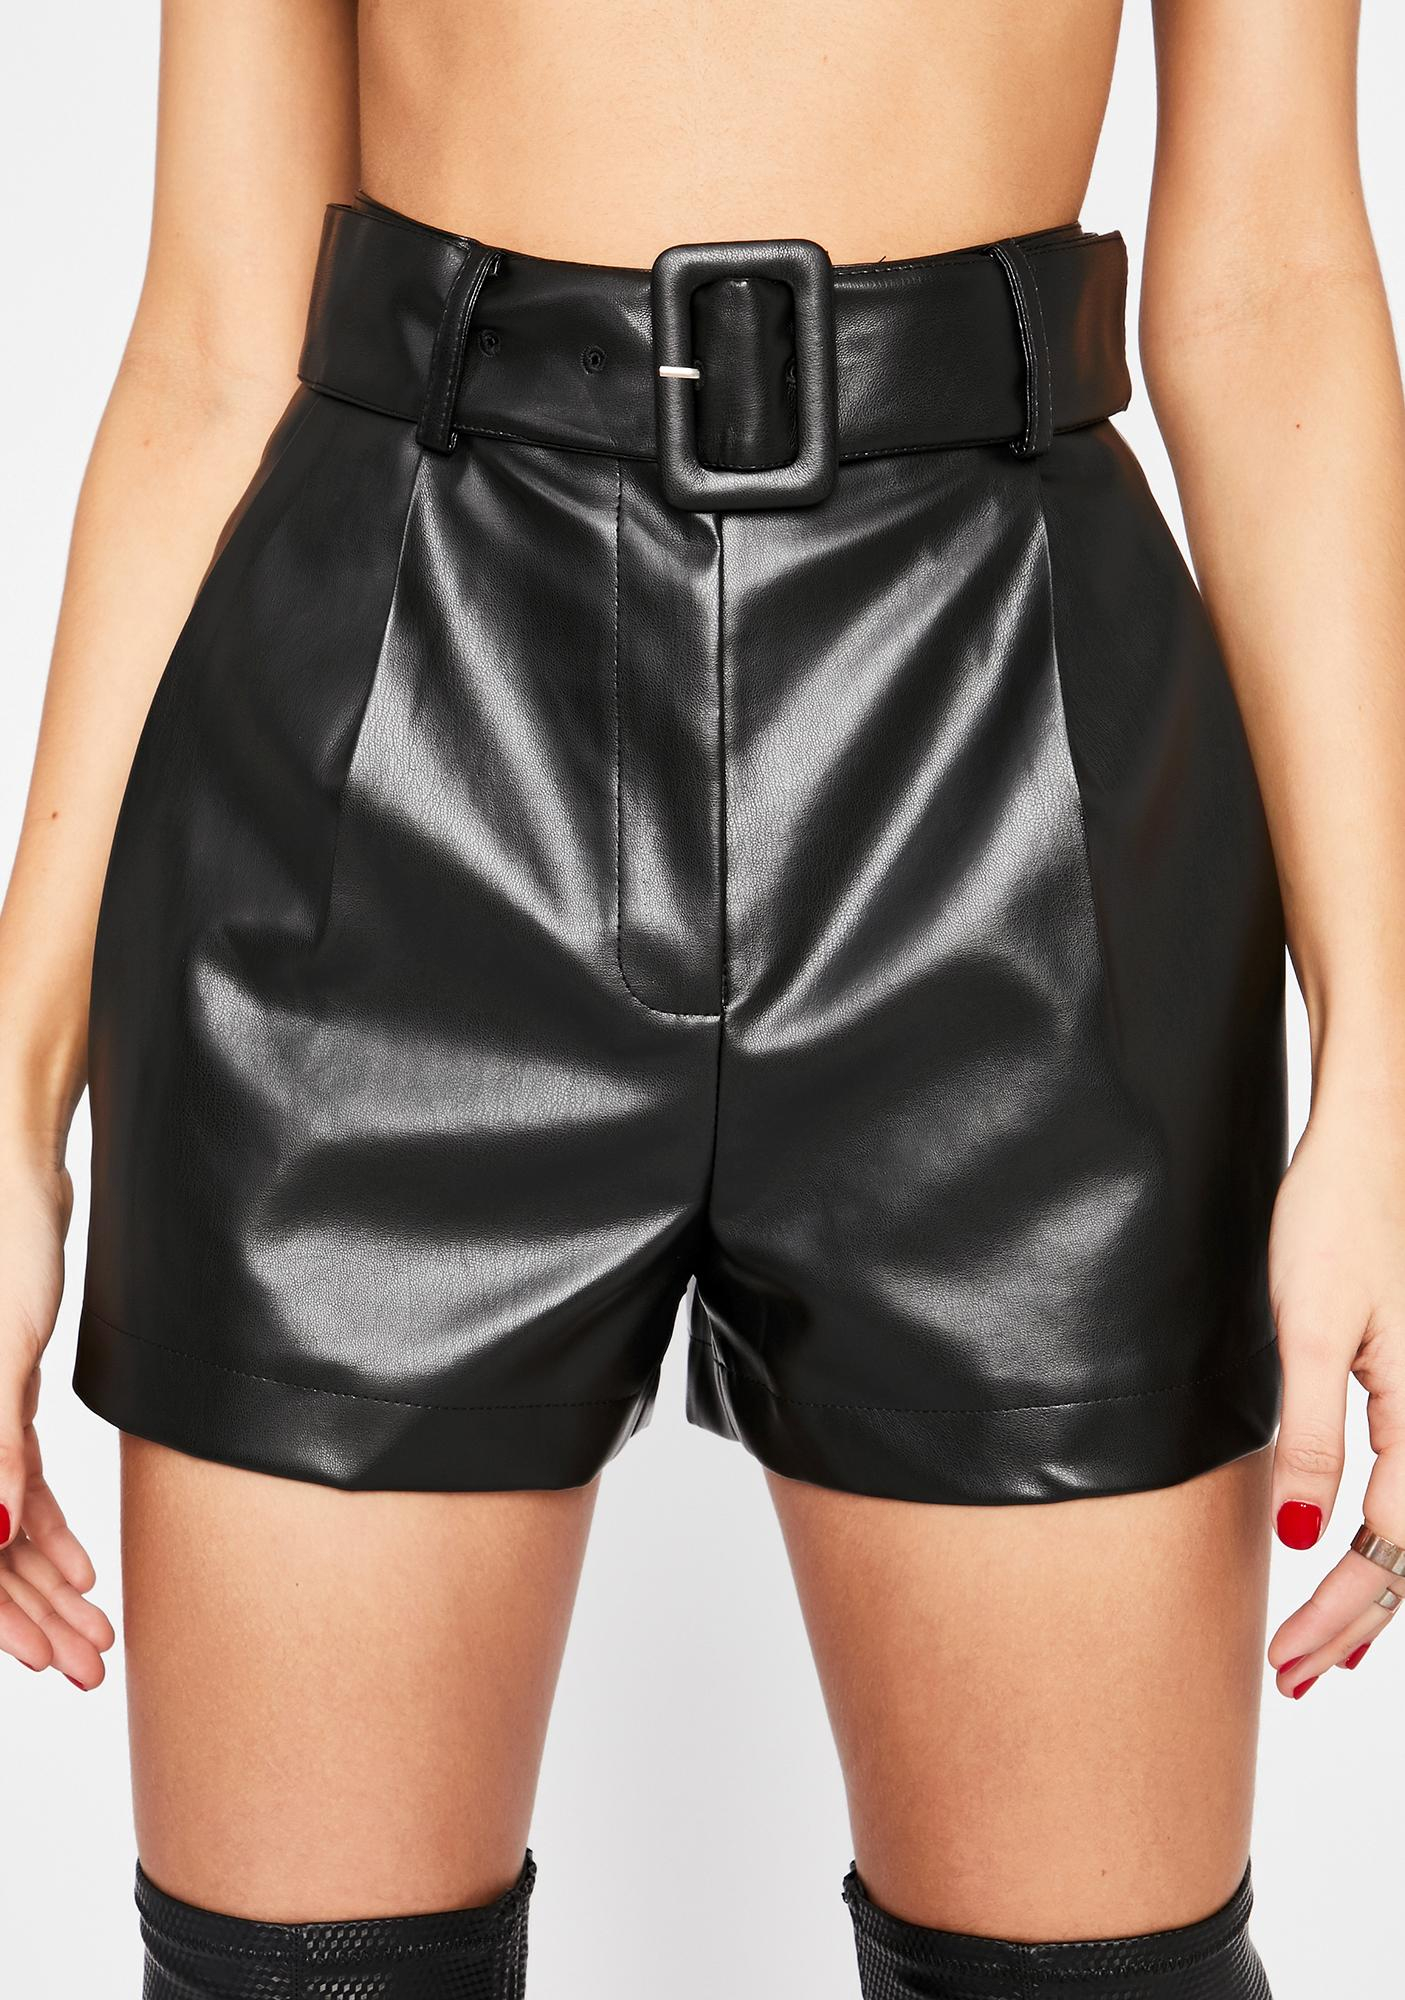 Miss Business Belted Shorts